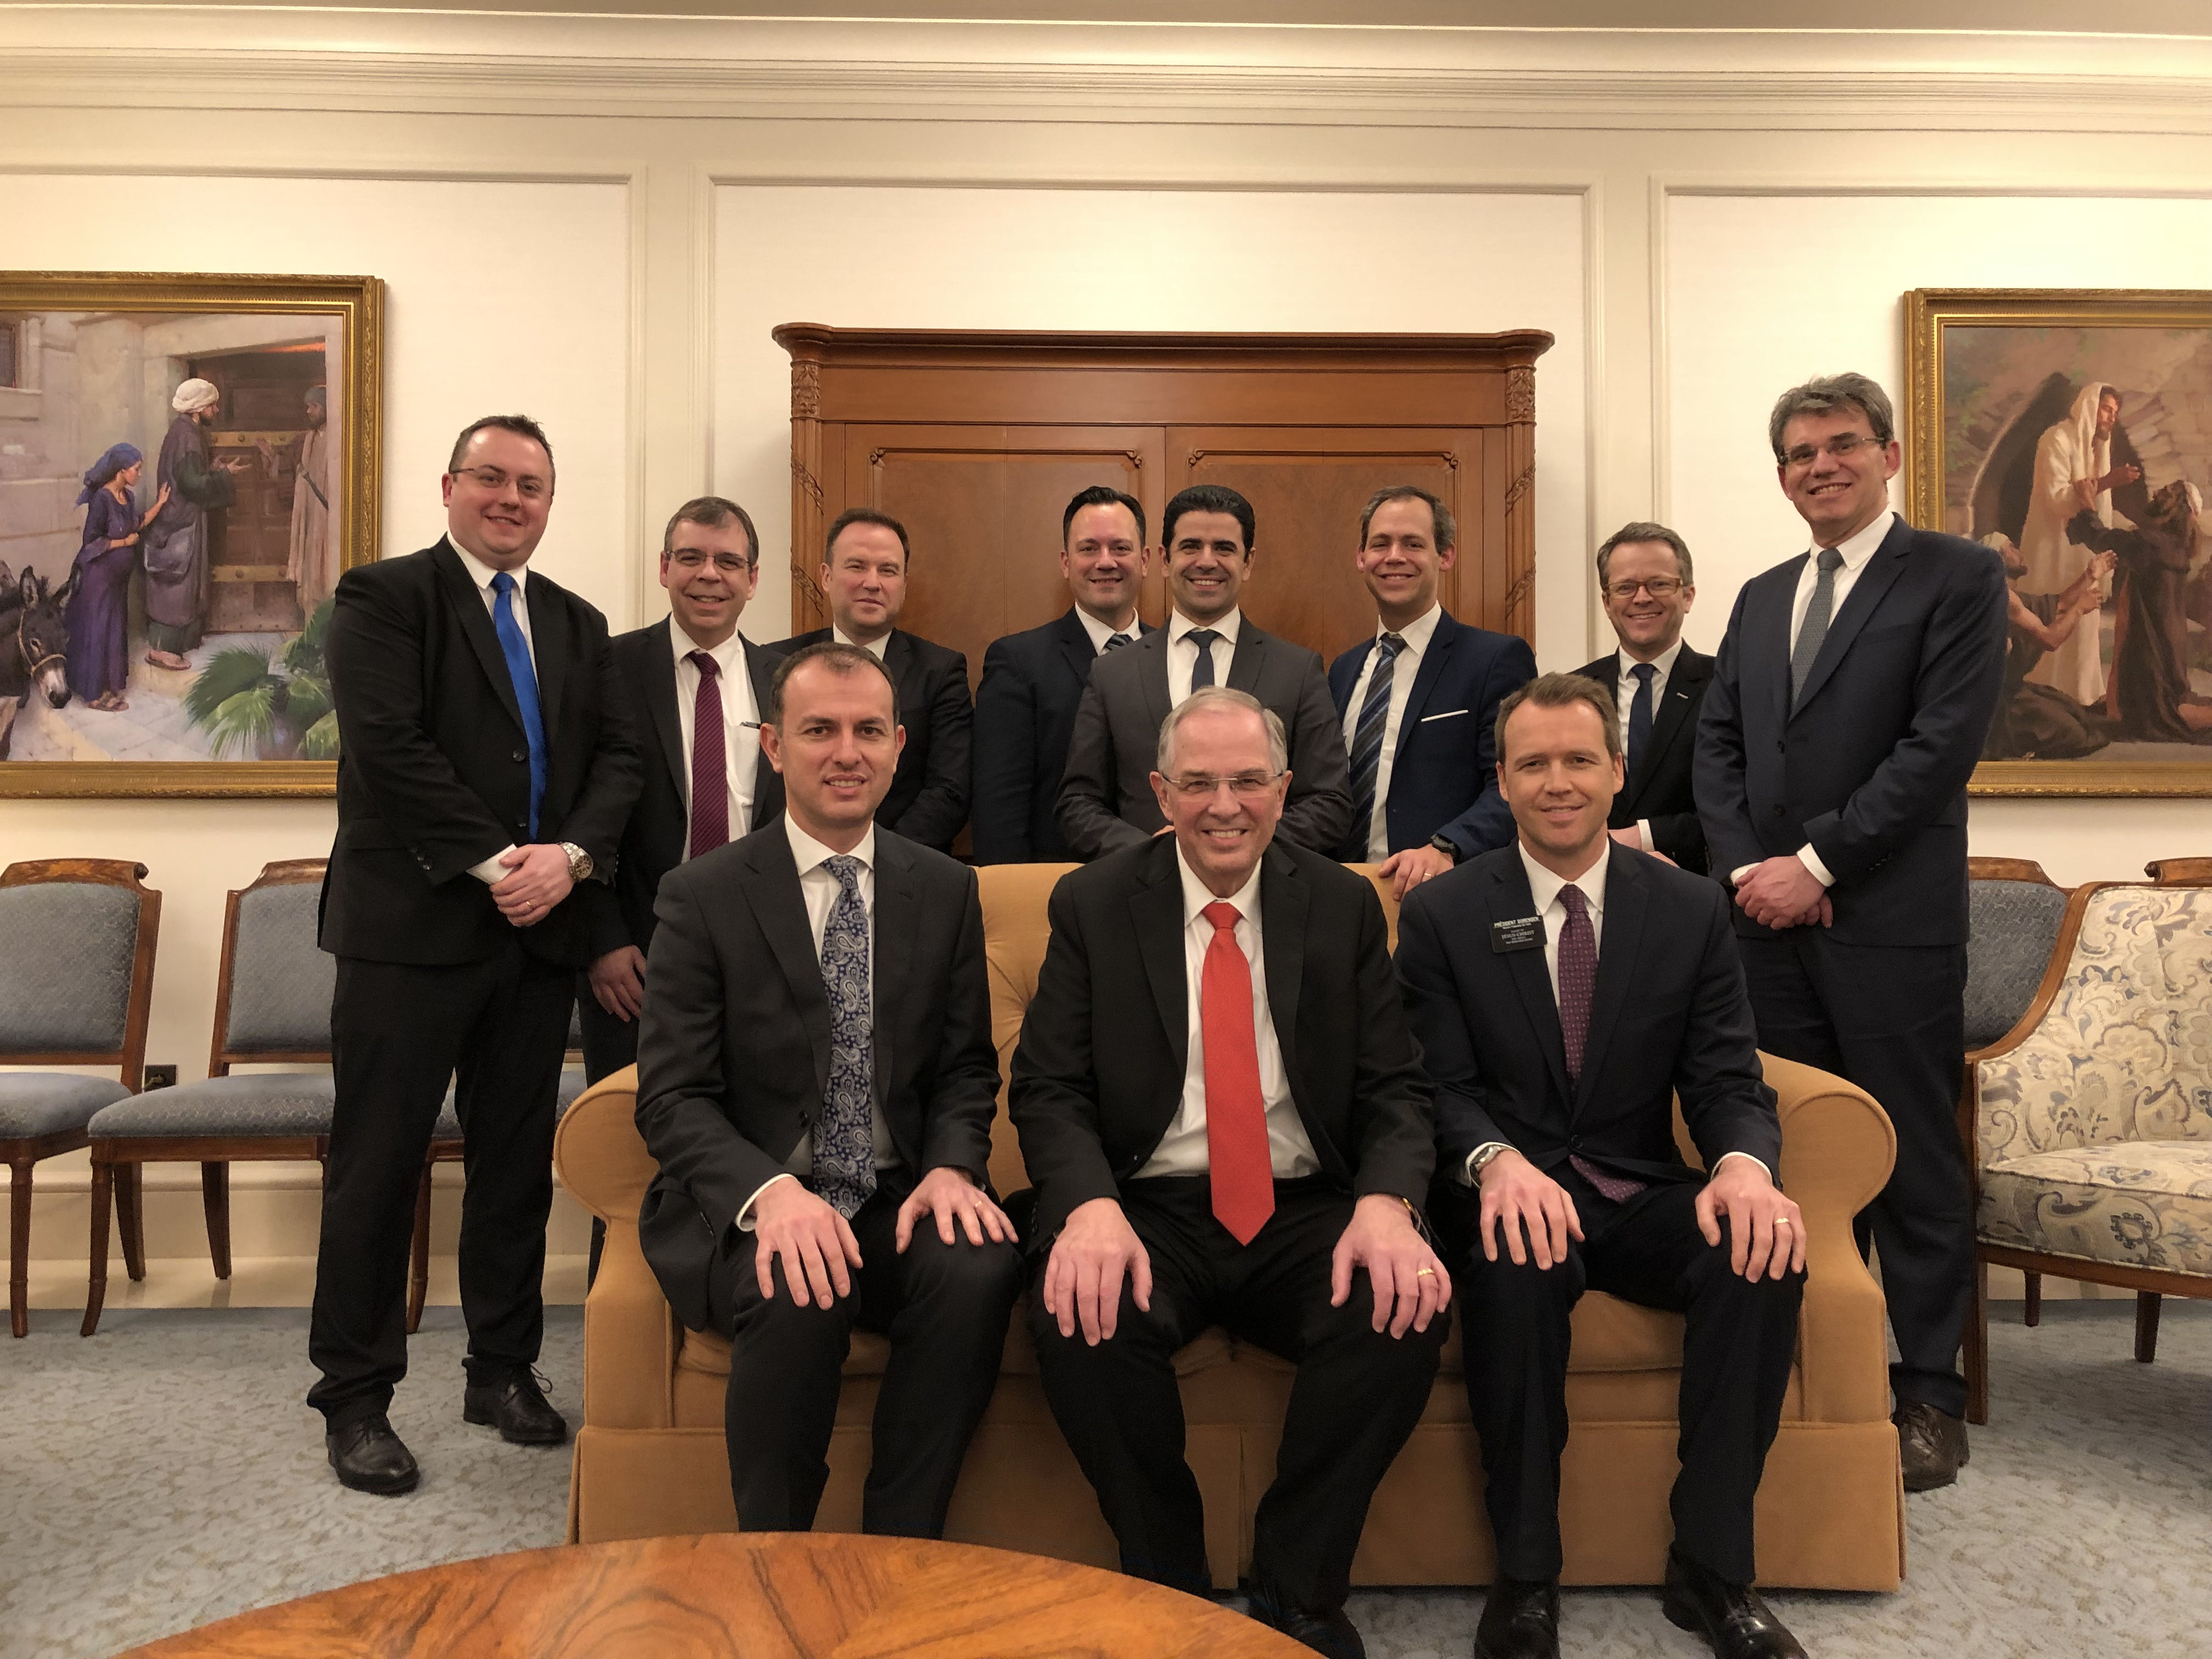 Elder Neil L. Andersen met with Elder Matthieu Bennasar (front row, left) and President Paul J. Sorensen (front row, right), president of the France Paris Mission, along with the stake presidencies of the three stakes in Paris.